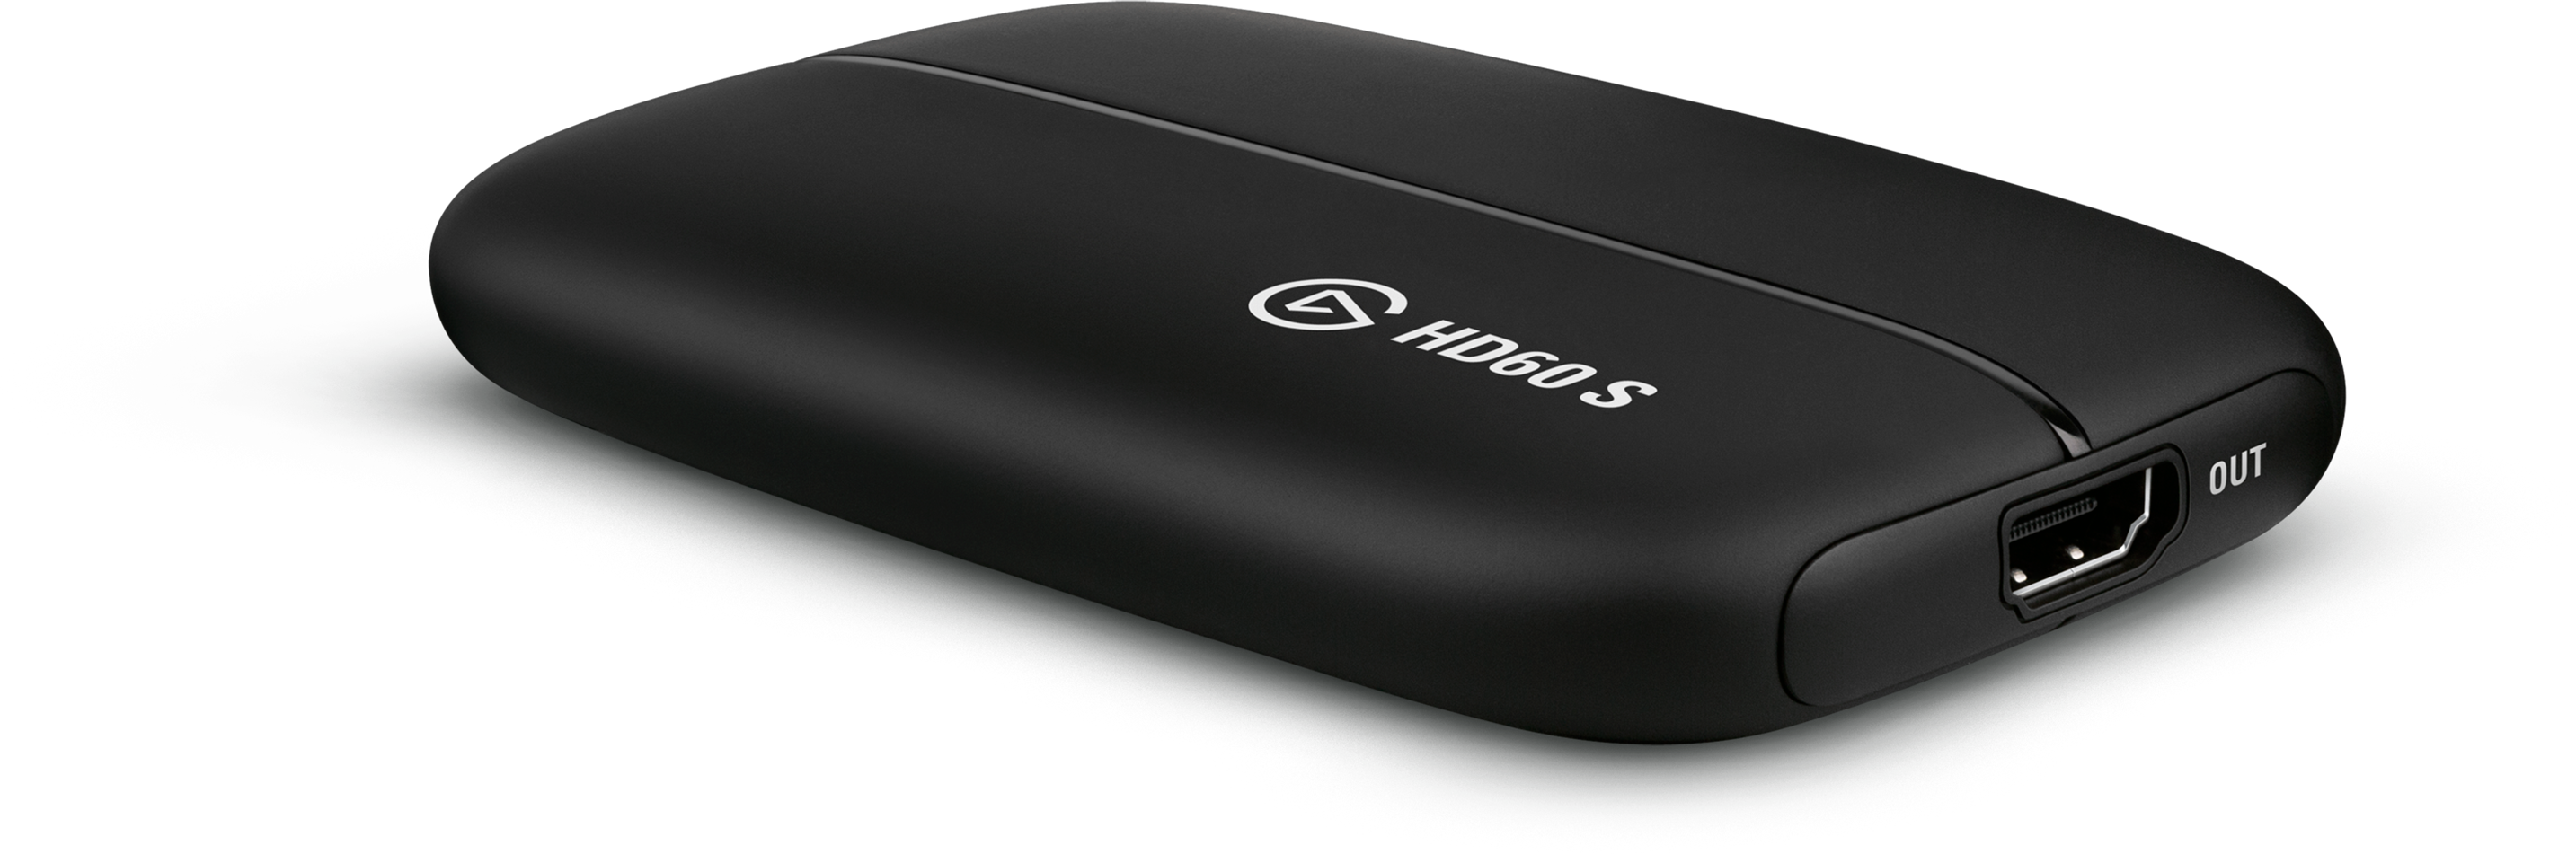 RE1Zeyg?ver=c237 - Elgato Systems Game Capture HD60 S